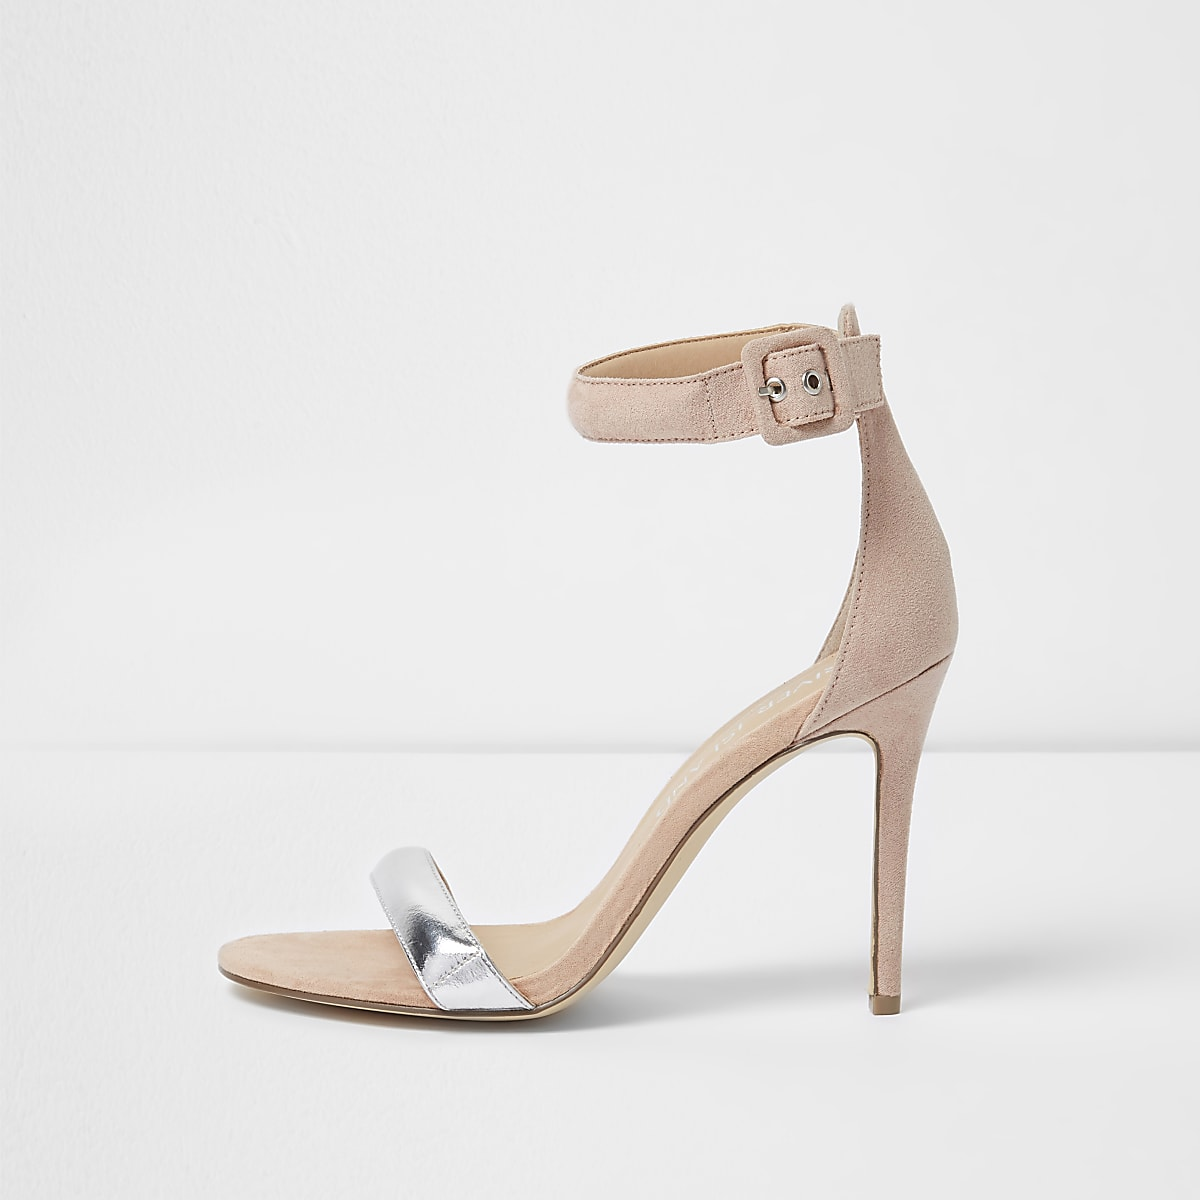 63e4f905c672 Nude barely there metallic wide fit sandals - Sandals - Shoes   Boots -  women